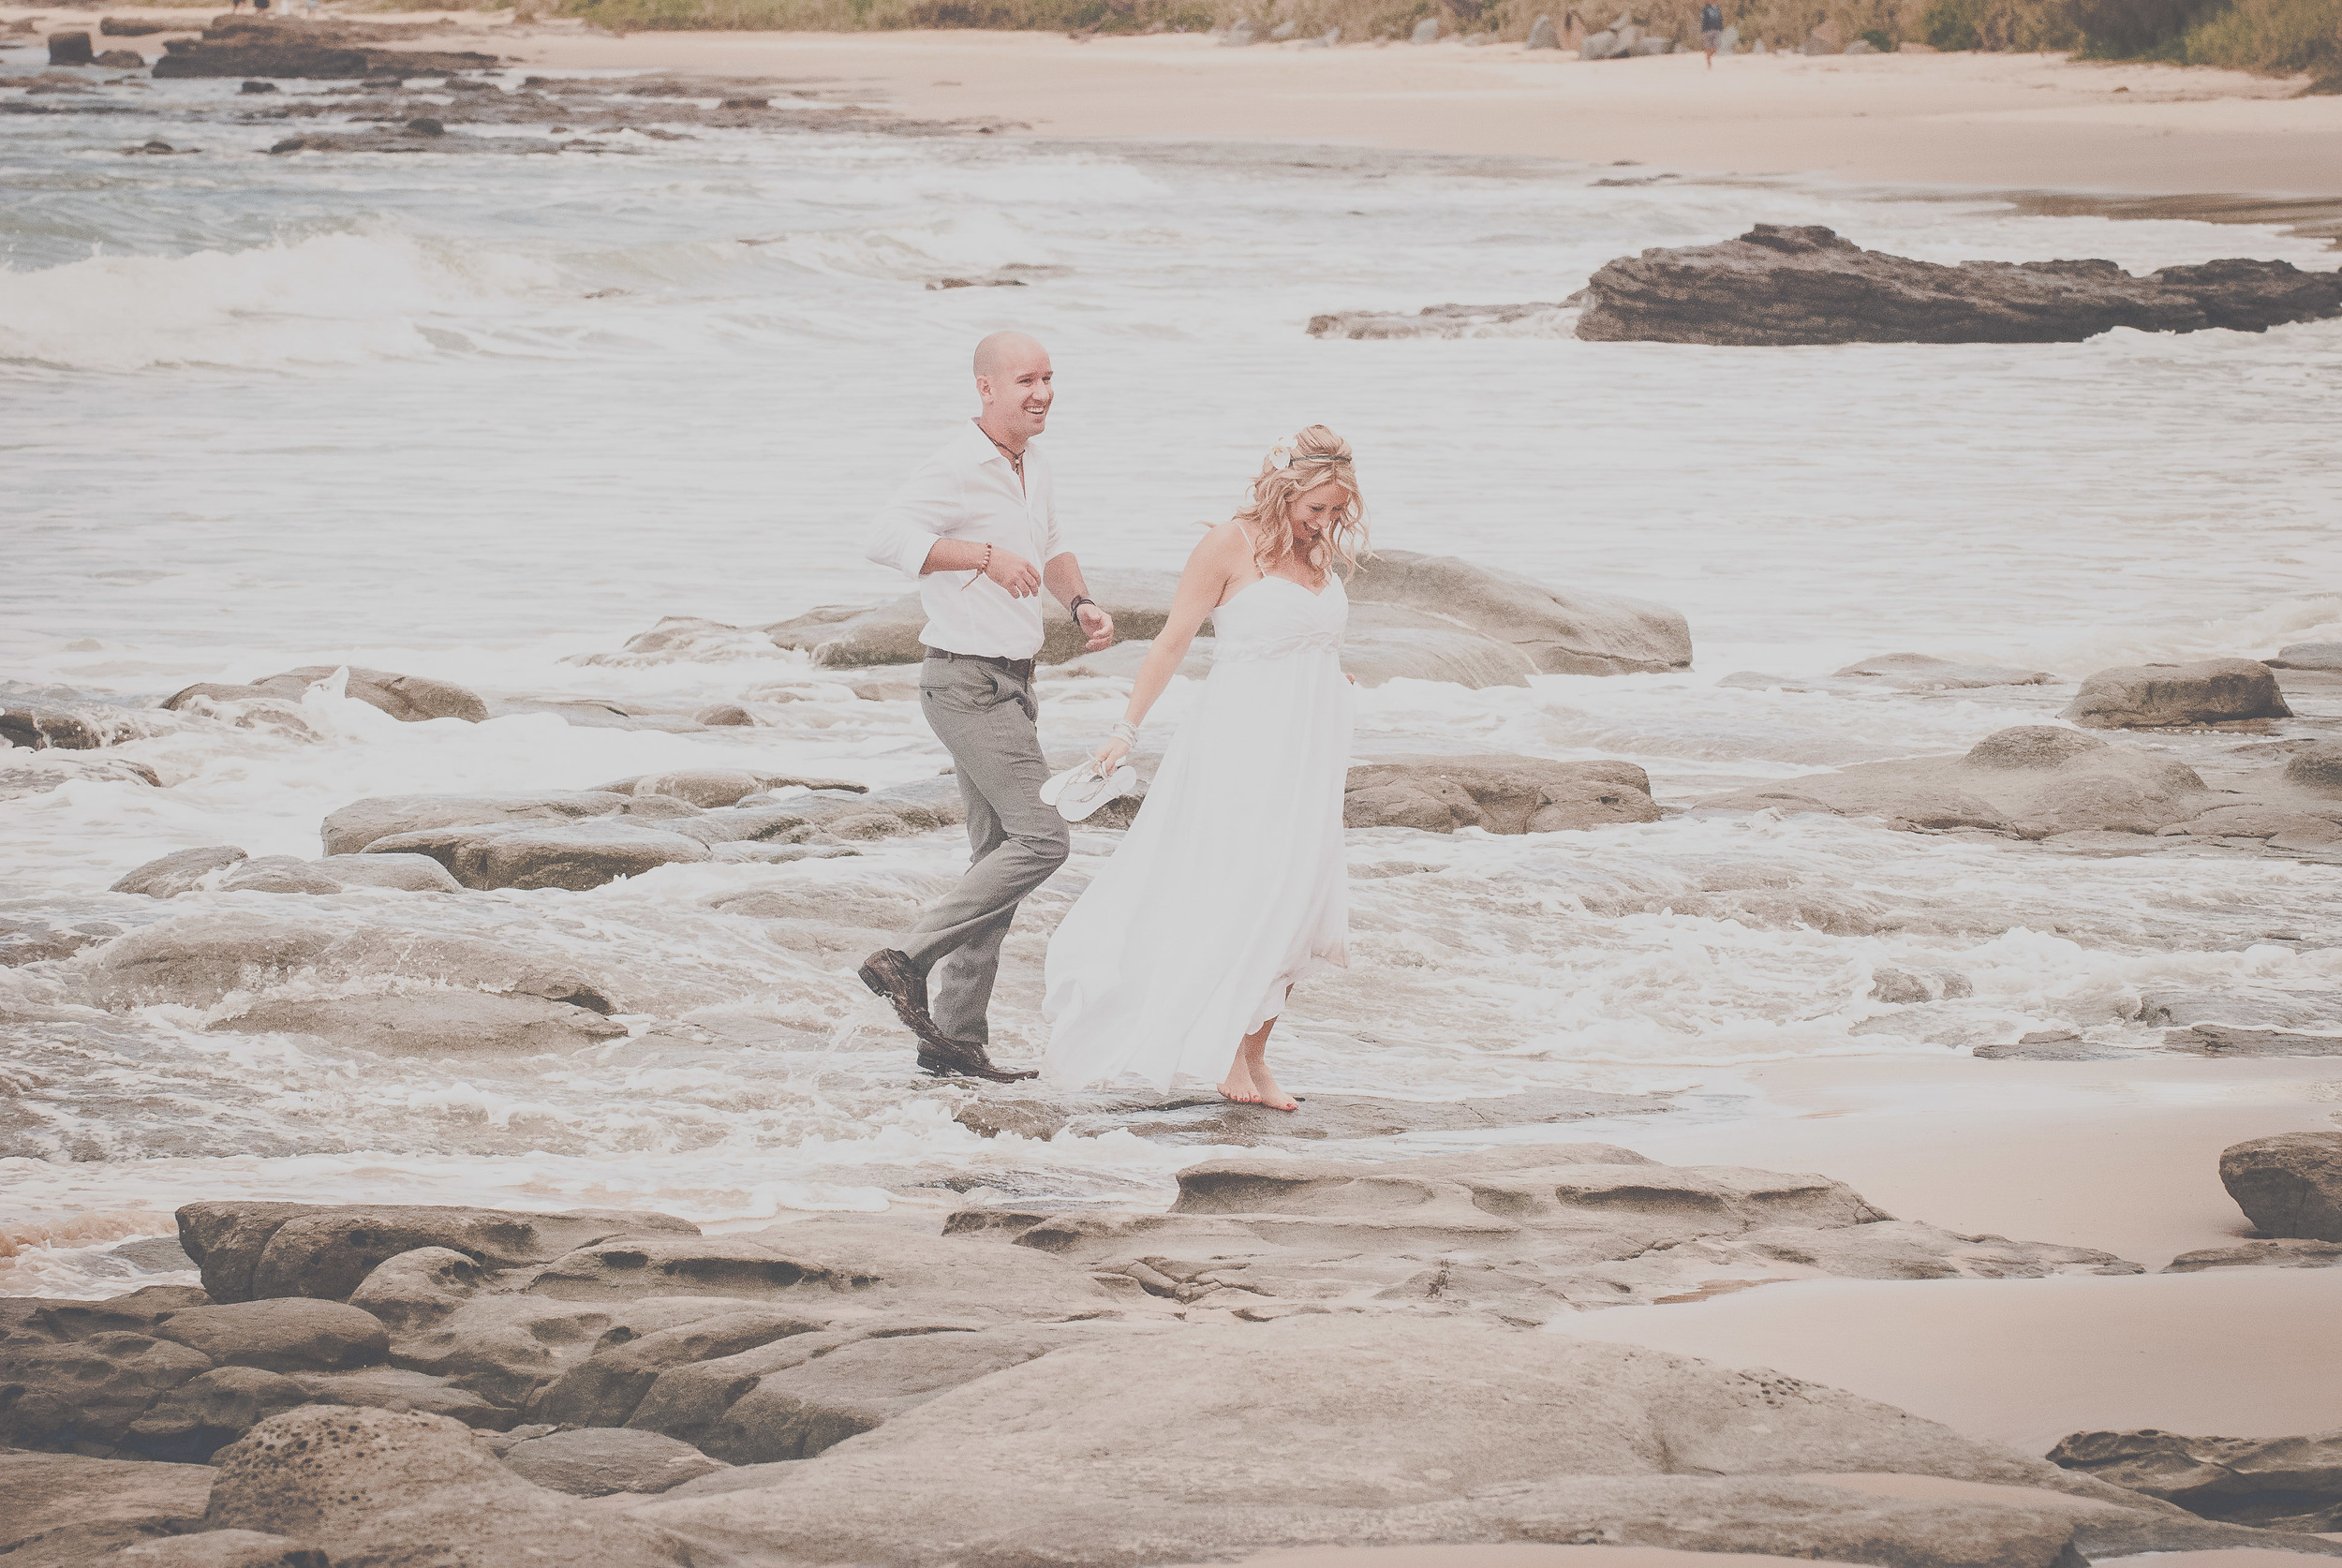 Seeweddings-42.jpg